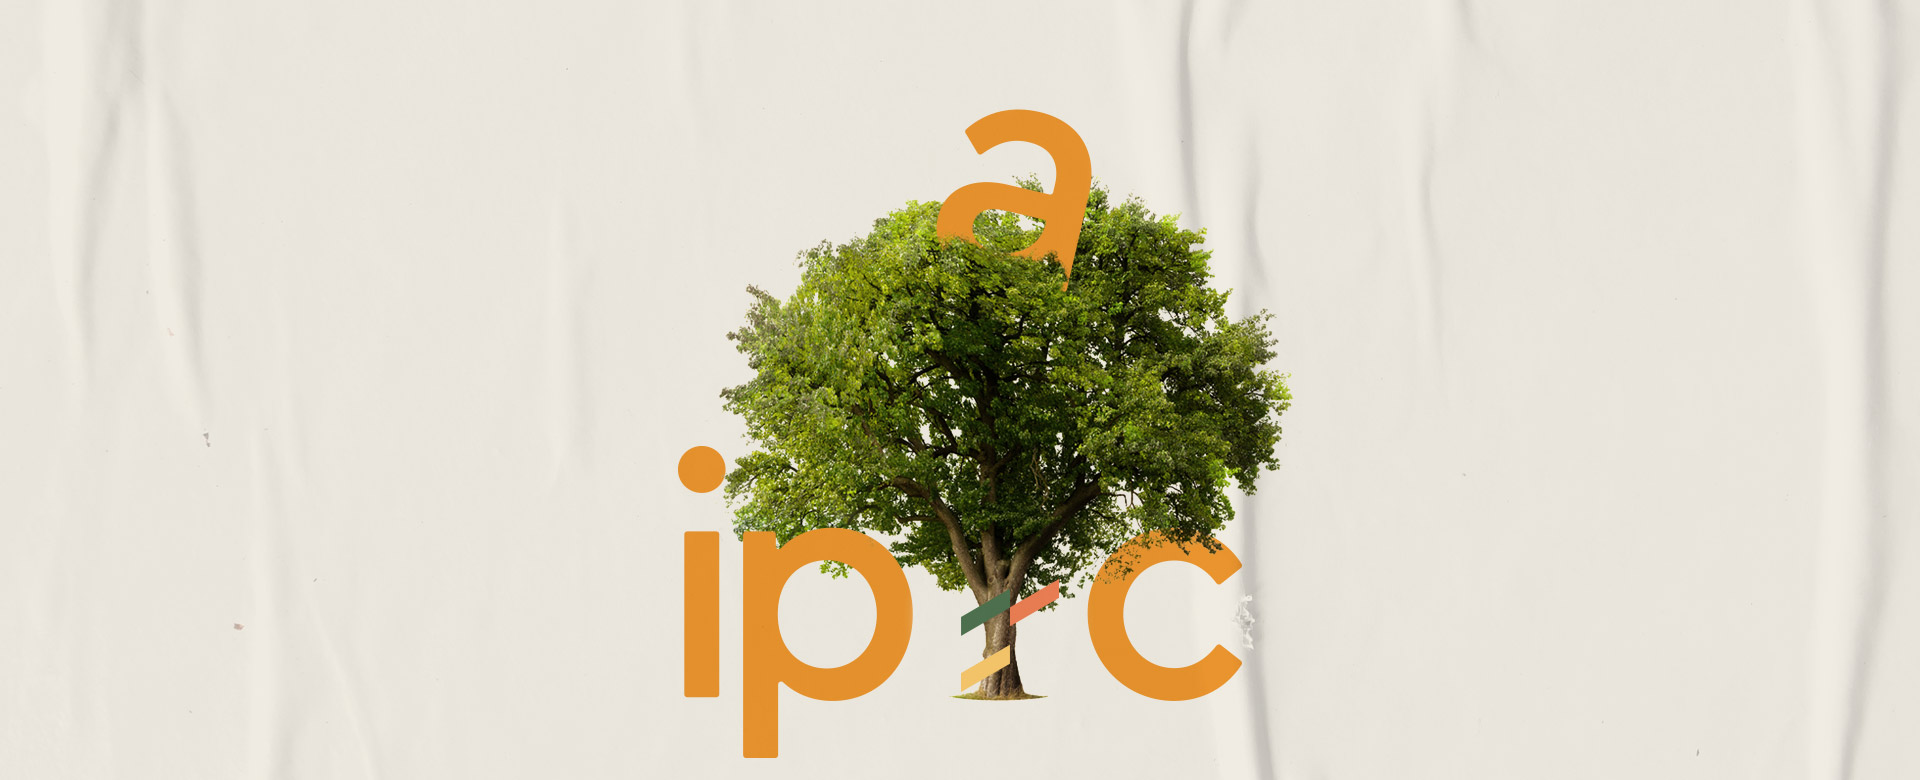 ipac-banner-3